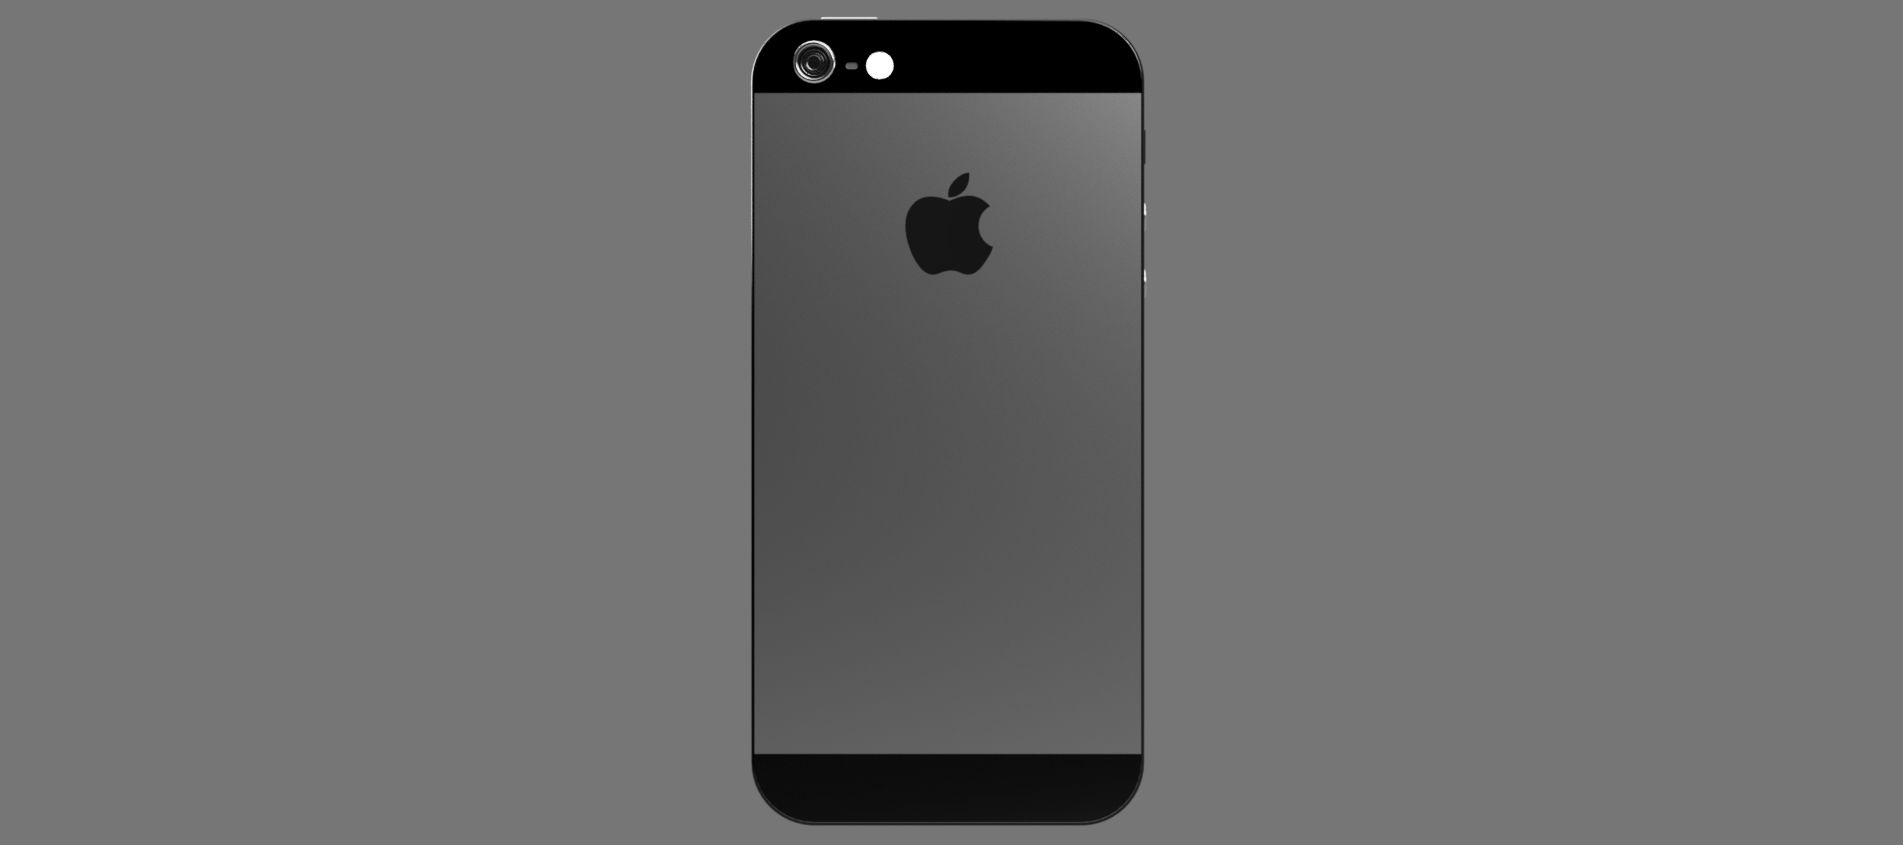 Iphone-5-v40-5-3500-3500